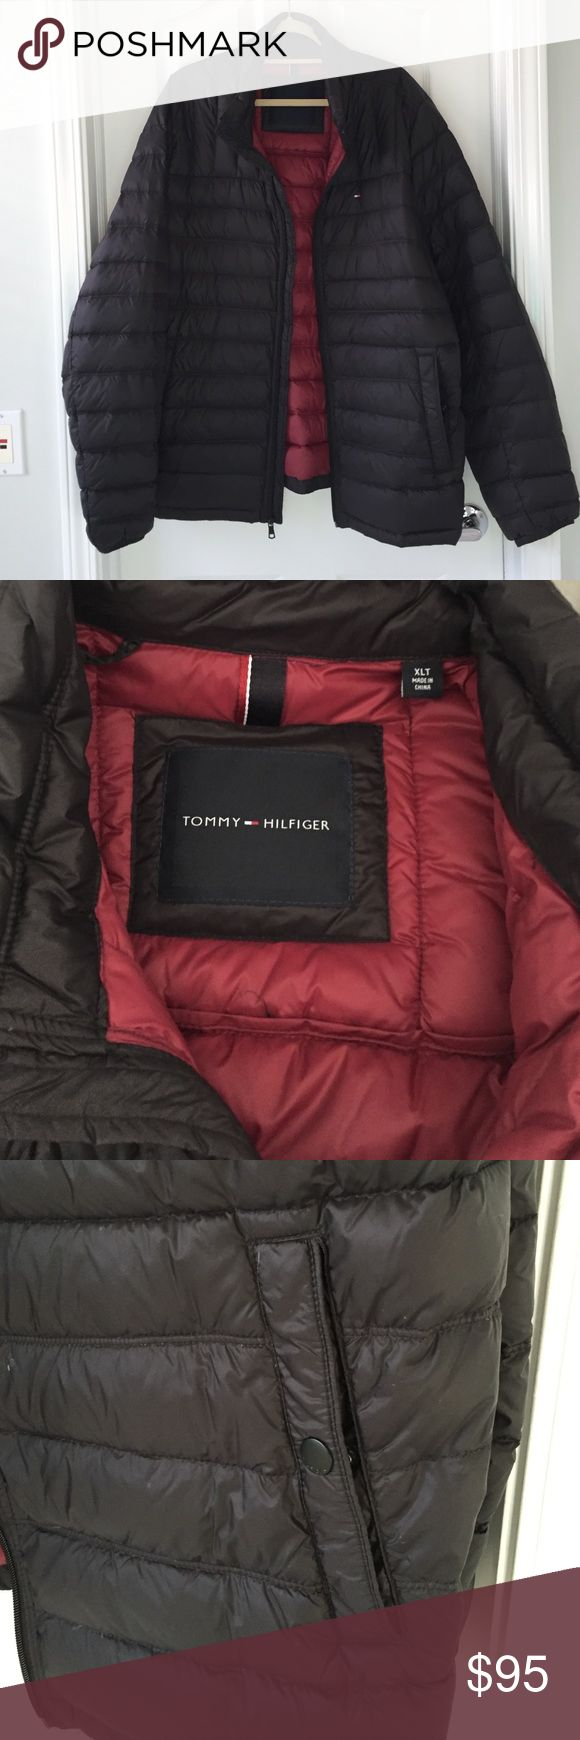 "NWOT men's Tommy Hilfiger packable down jacket Black packable down jacket by Tommy Hilfiger with dark red lining. Storage bag included. Garment measurements (approximate): sleeve length 28"", shoulder seam to shoulder seam 18"", chest 26.5"" across, overall length 30"".  Excellent condition, never worn. Tommy Hilfiger Jackets & Coats Puffers"